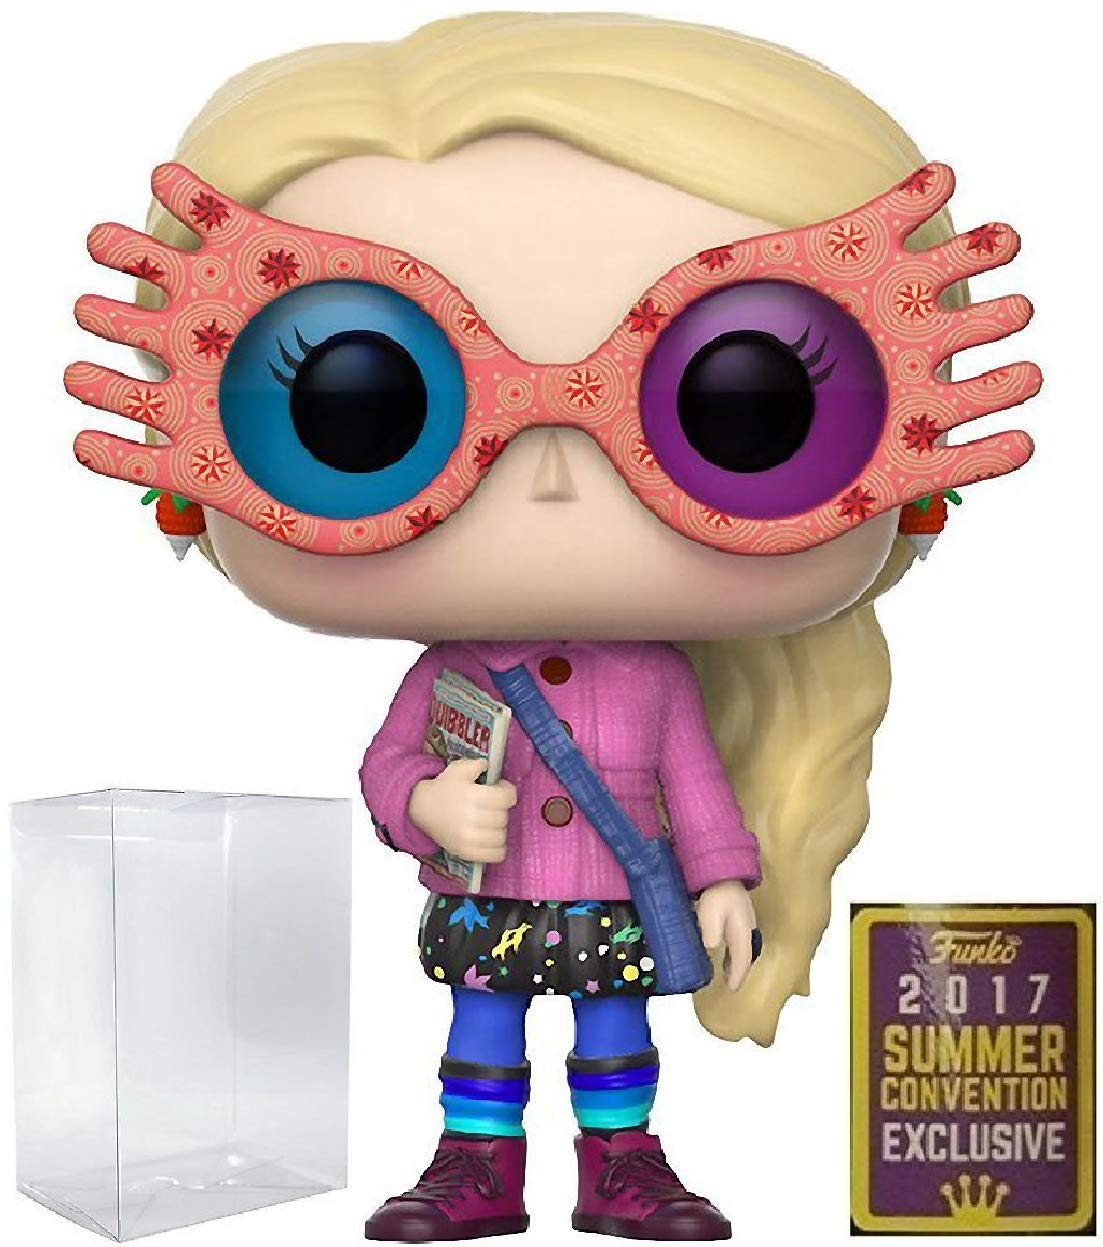 Harry Potter Funko Pop! Movies Luna Lovegood with Glasses #41 SDCC 2017 Summer Convention Exclusive Vinyl Figure (Bundled with Pop Box Protector CASE)